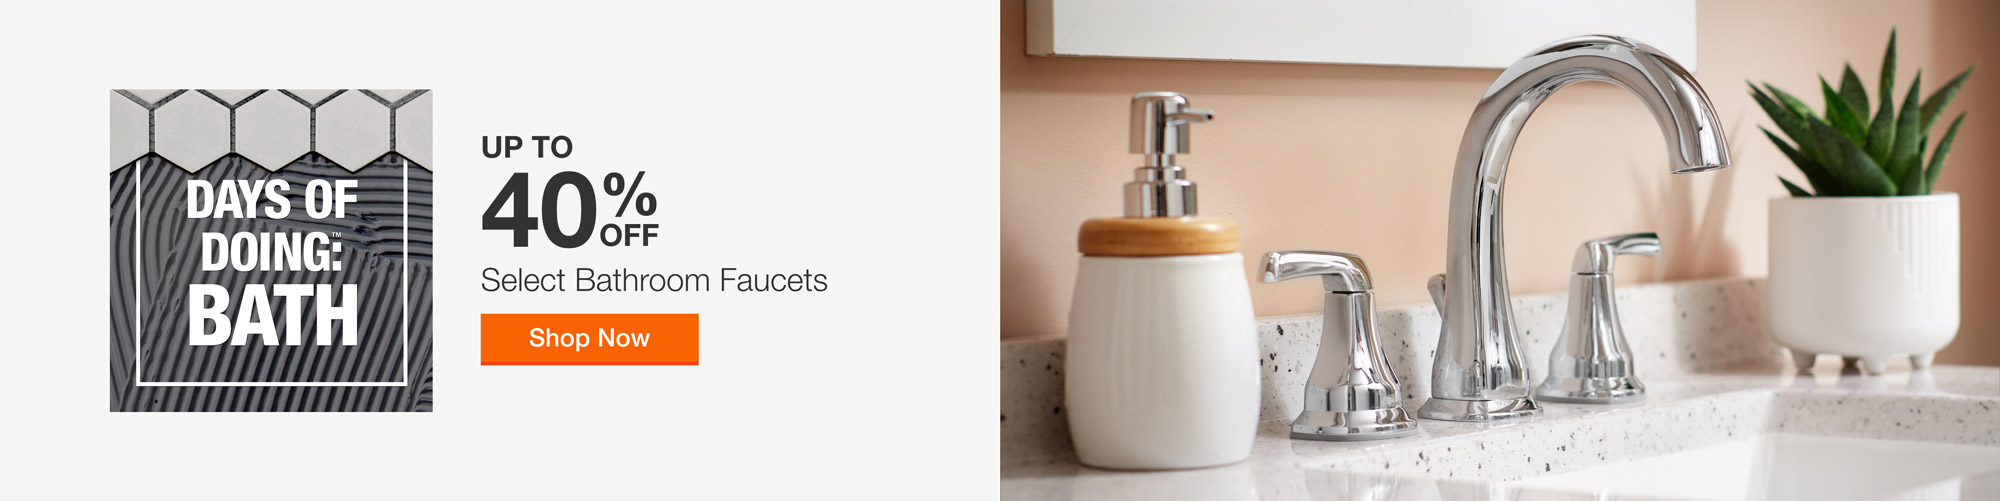 Up to 40% off Select Bathroom Faucets